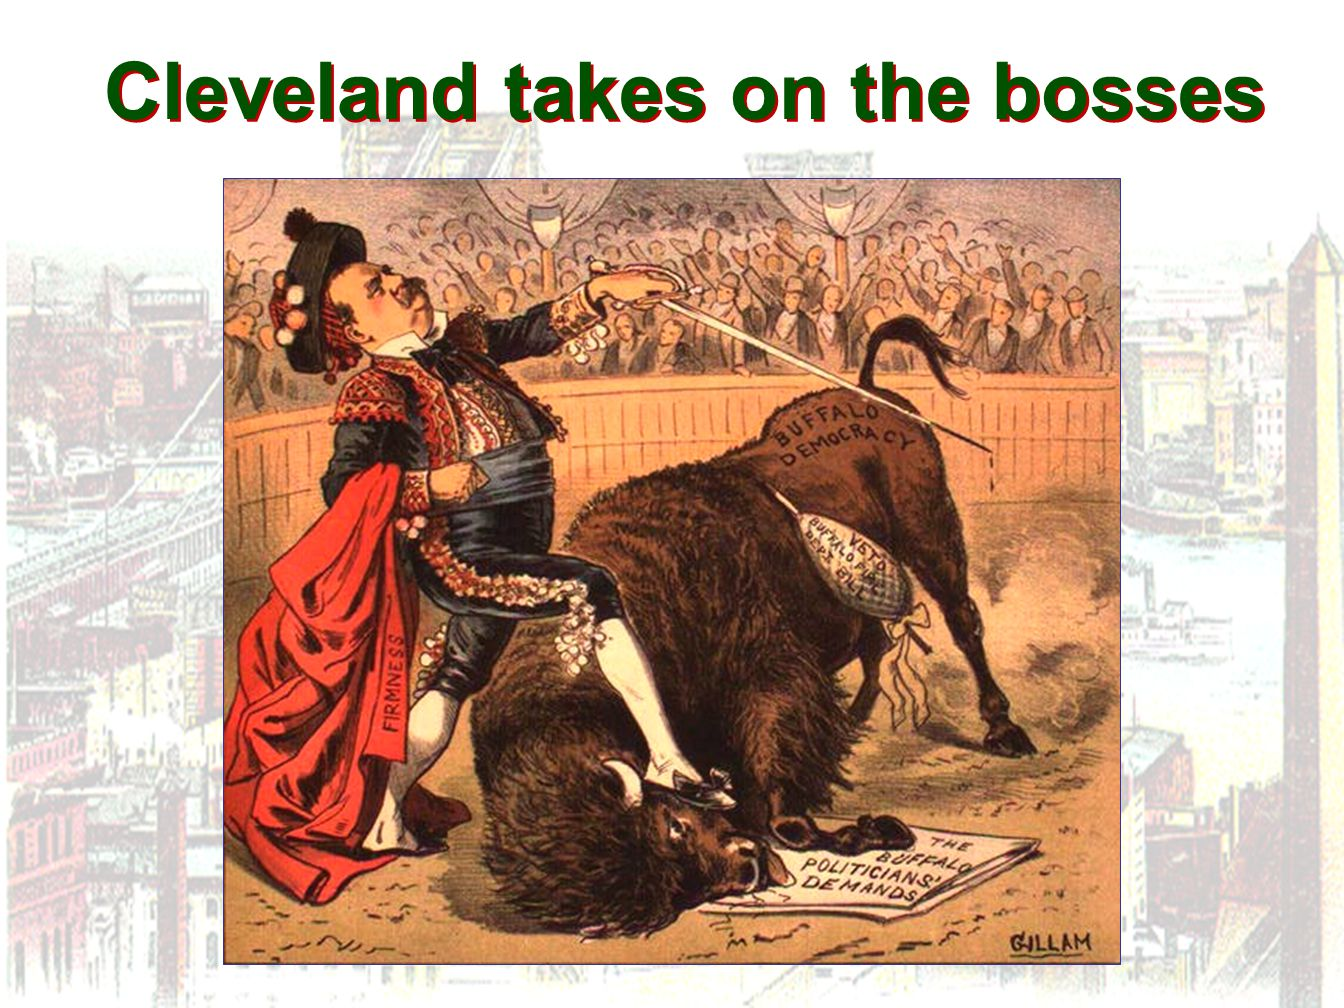 Cleveland takes on the bosses